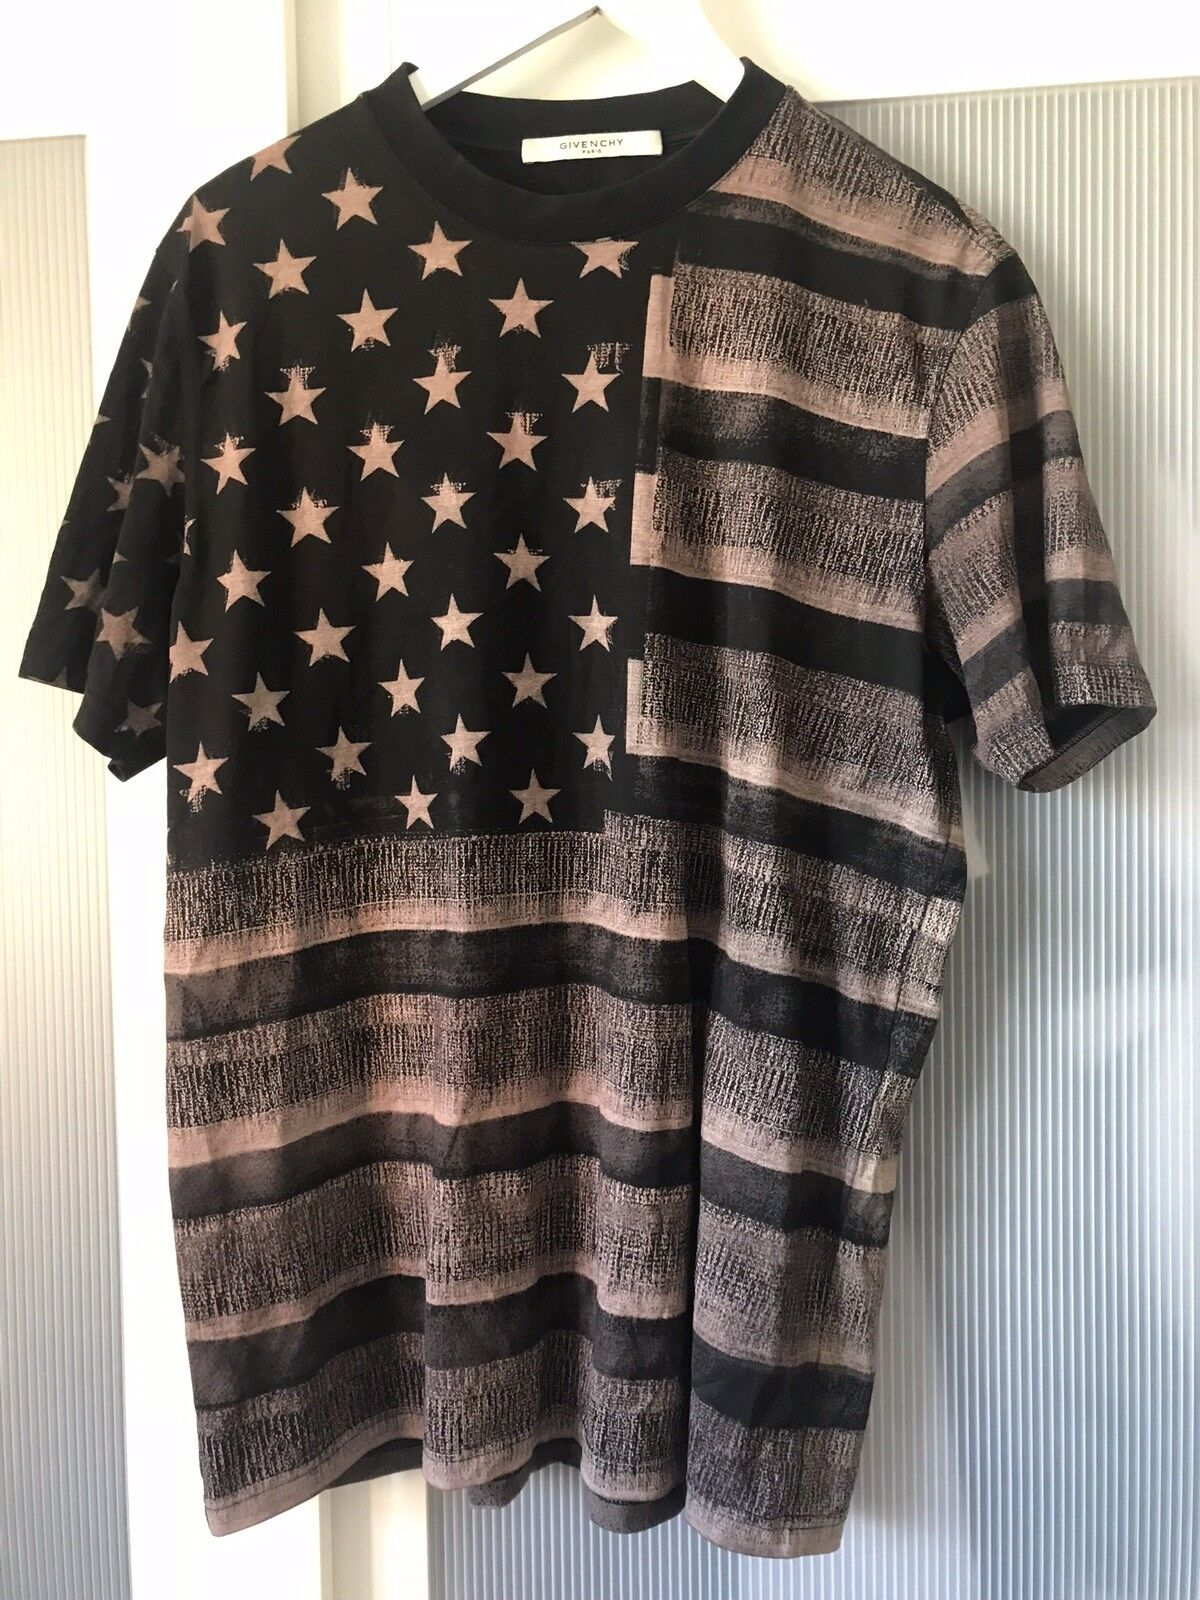 Givenchy tshirt top Ultra Rare  100% authentic